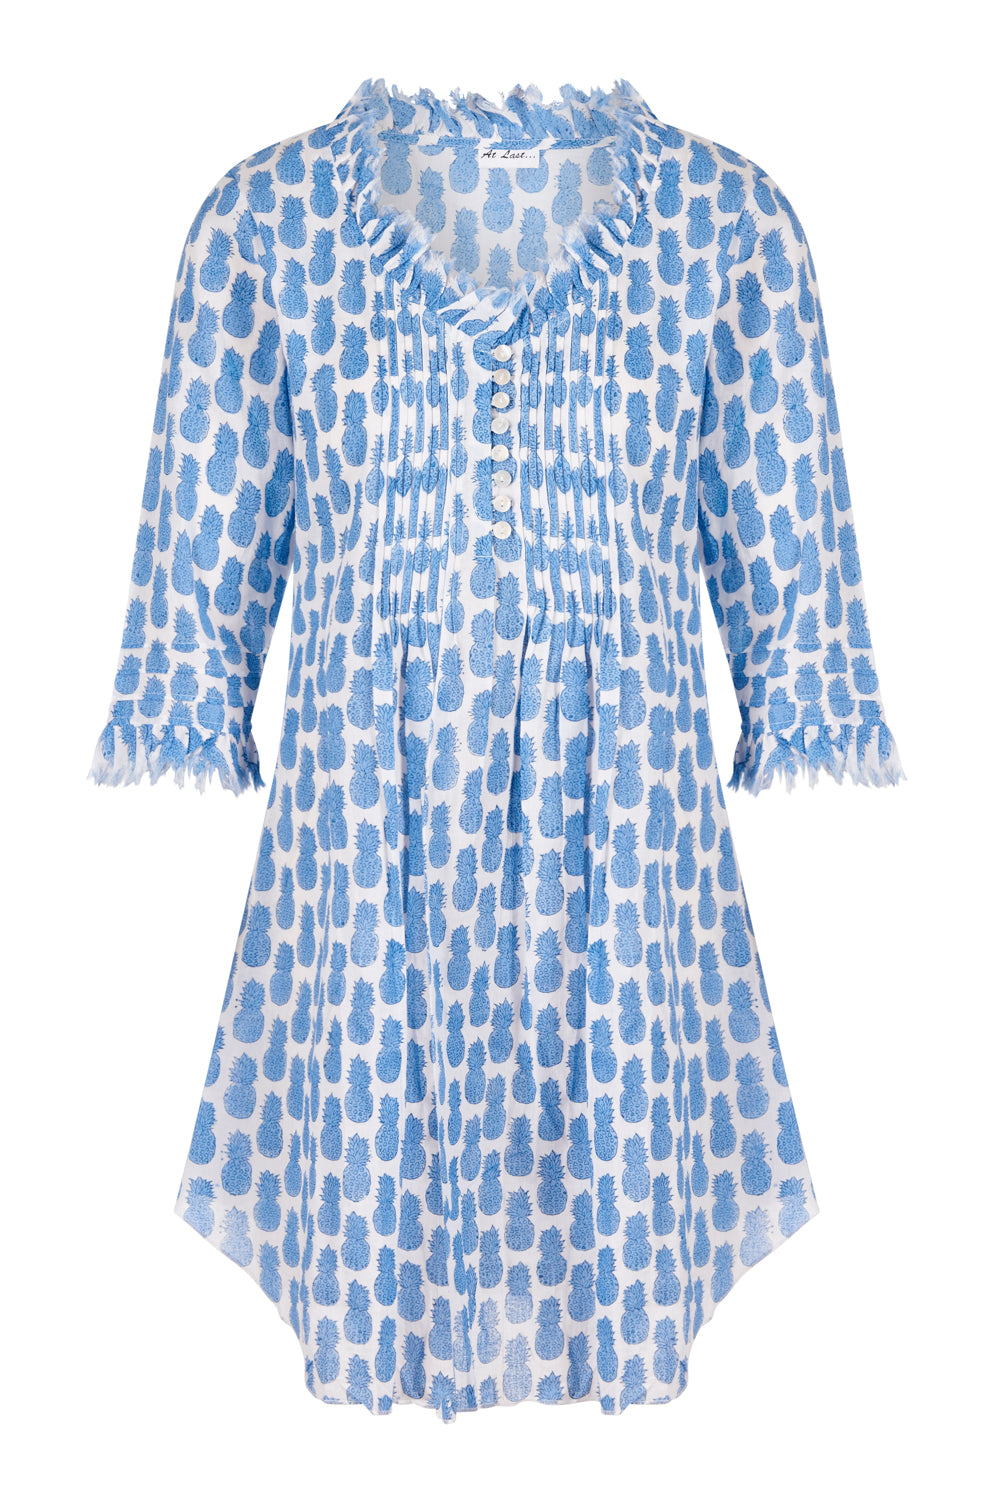 Annabel Cotton Tunic - Mini Blue Pineapples